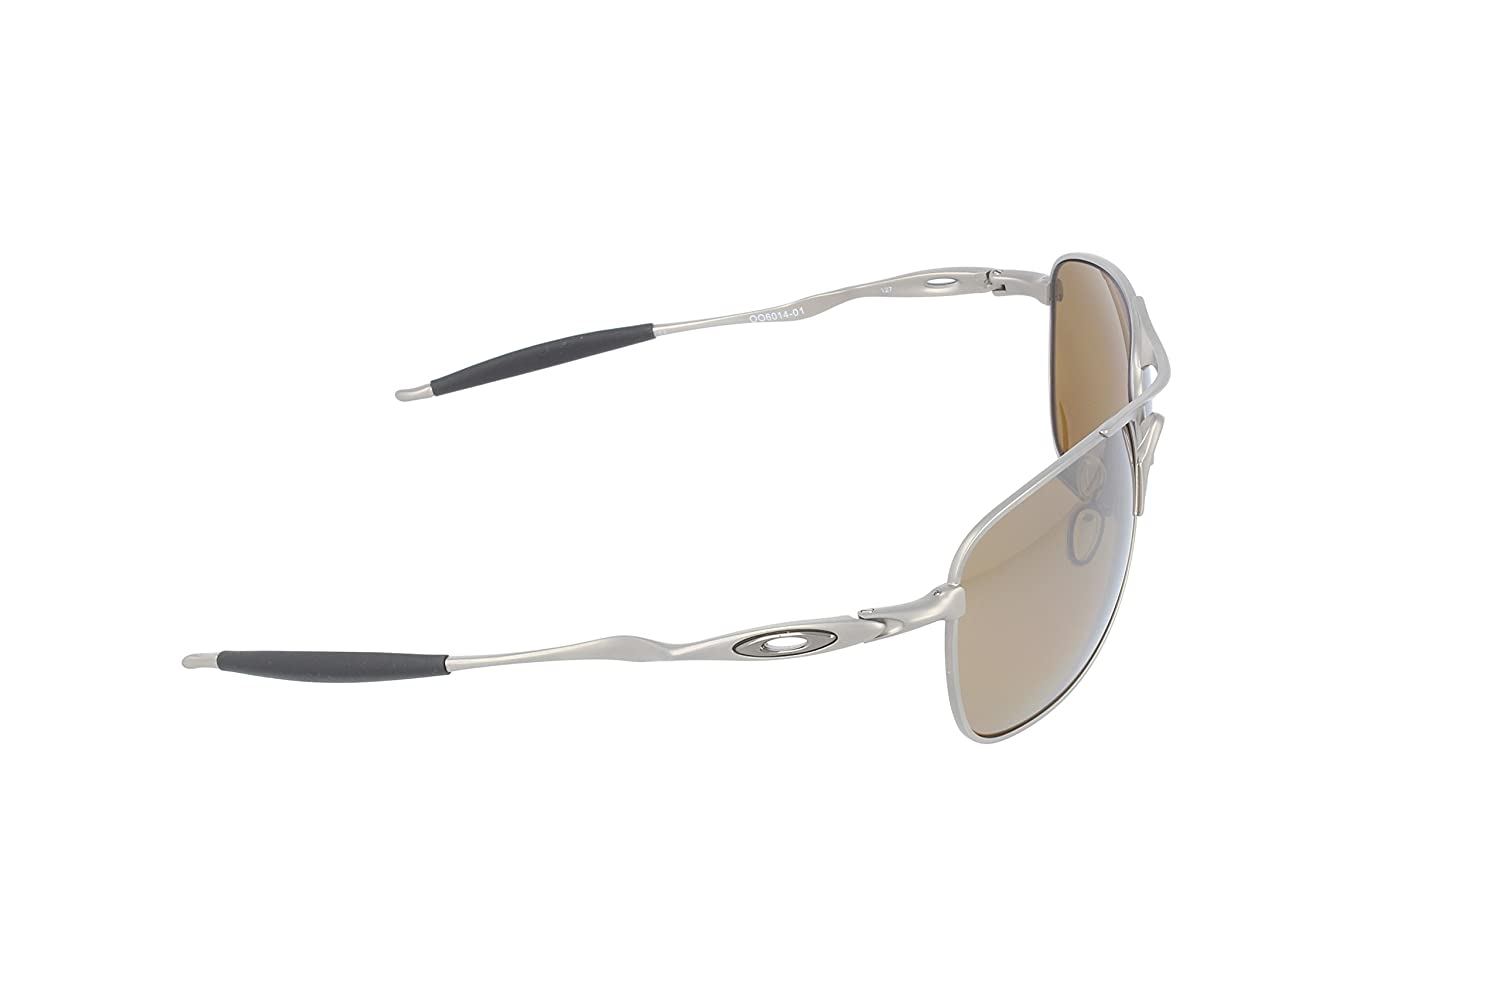 936330e7d2 Amazon.com: Oakley Titanium Crosshair Men's Polarized Sunglasses -  Titanium/Tungsten Iridium: Clothing